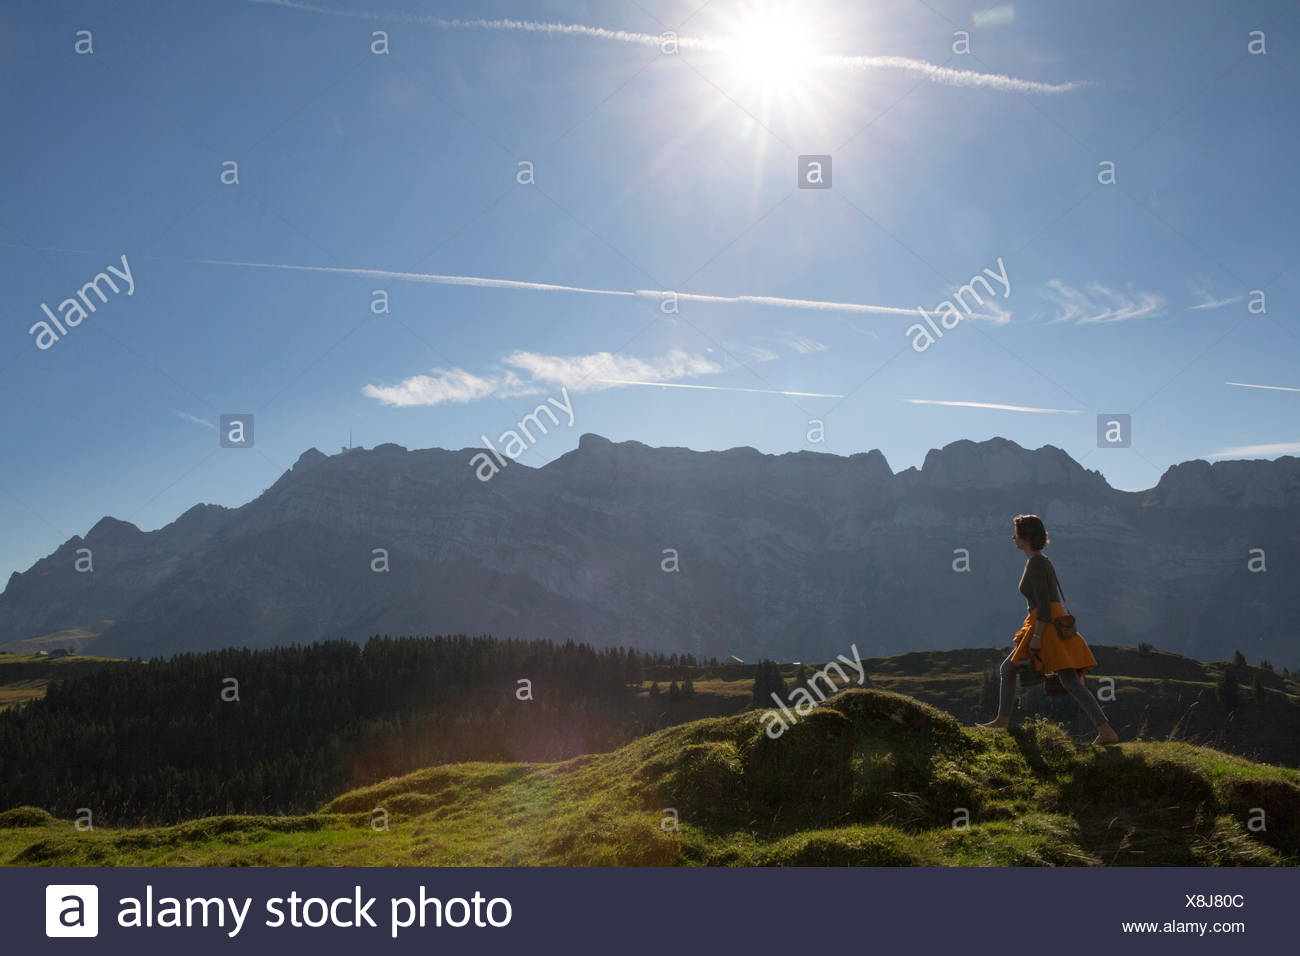 Alpstein, barefooted, walking, Kronberg, mountain, mountains, canton, Appenzell, Innerroden, Alpstein, Säntis, footpath, walking - Stock Image